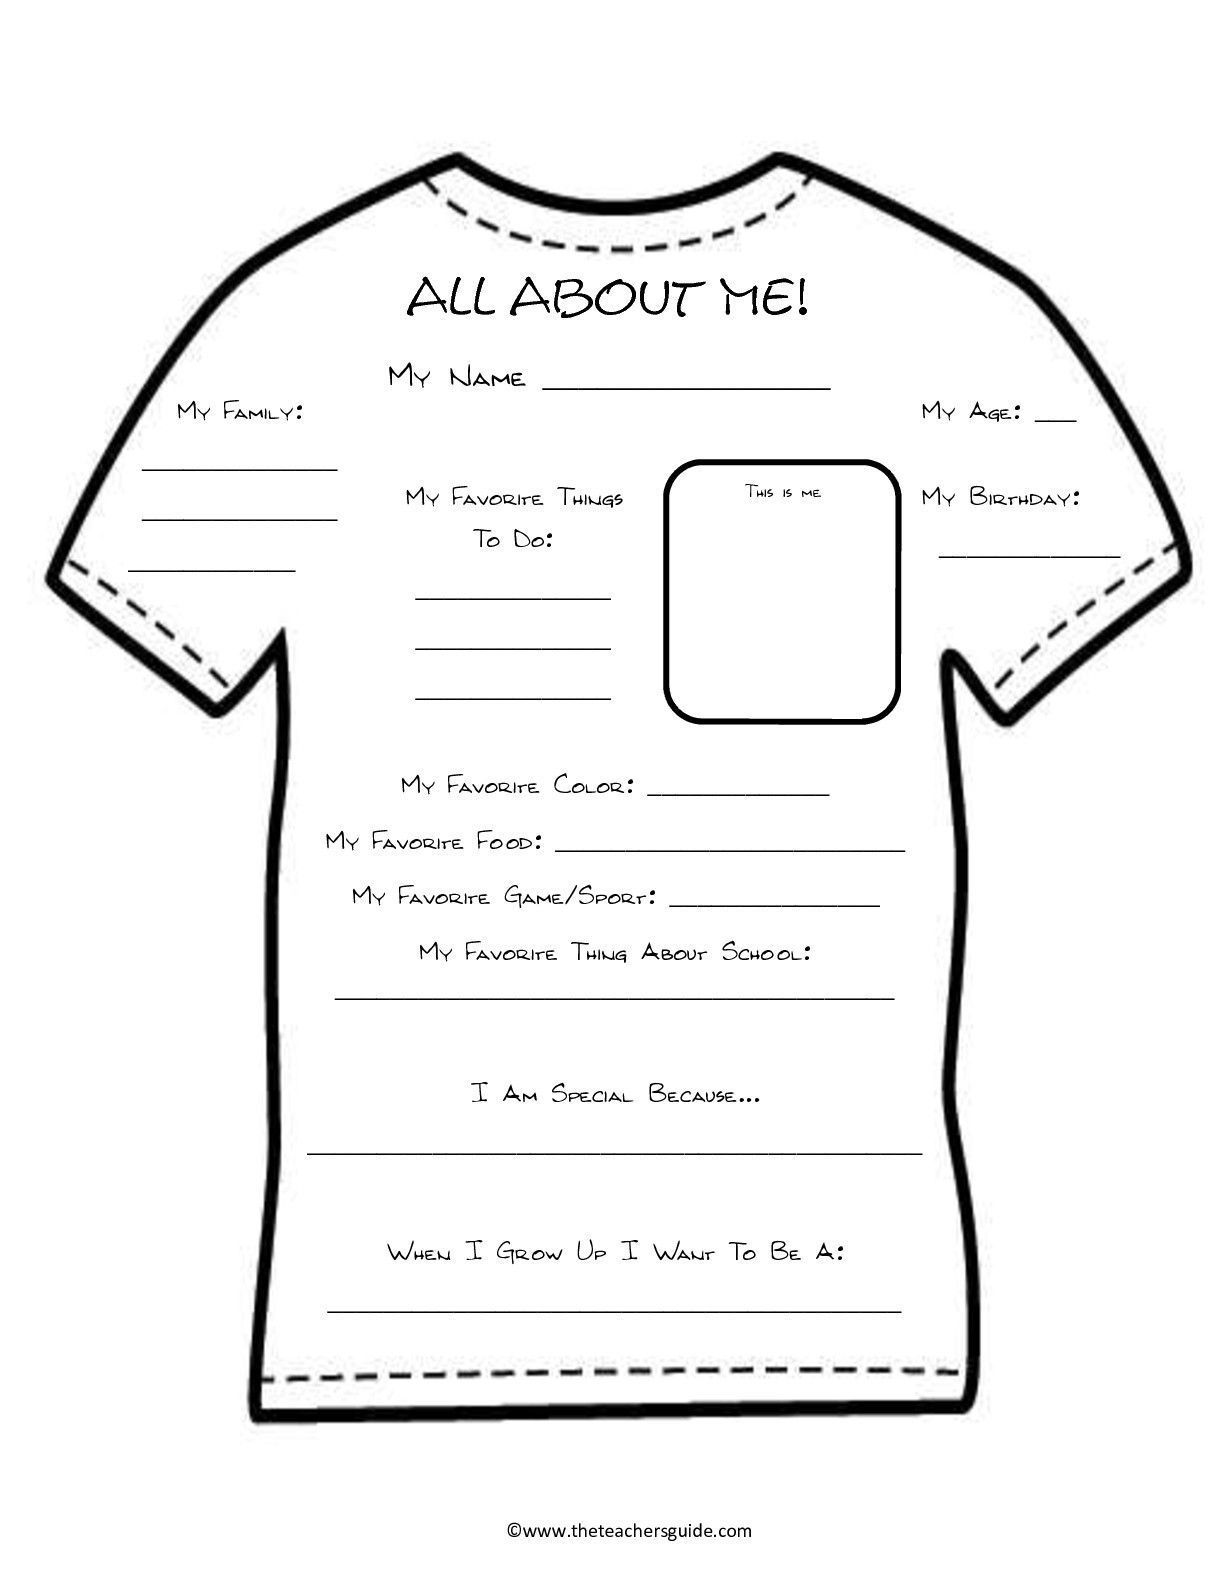 Post All About Me Printable Template Innovativ All About